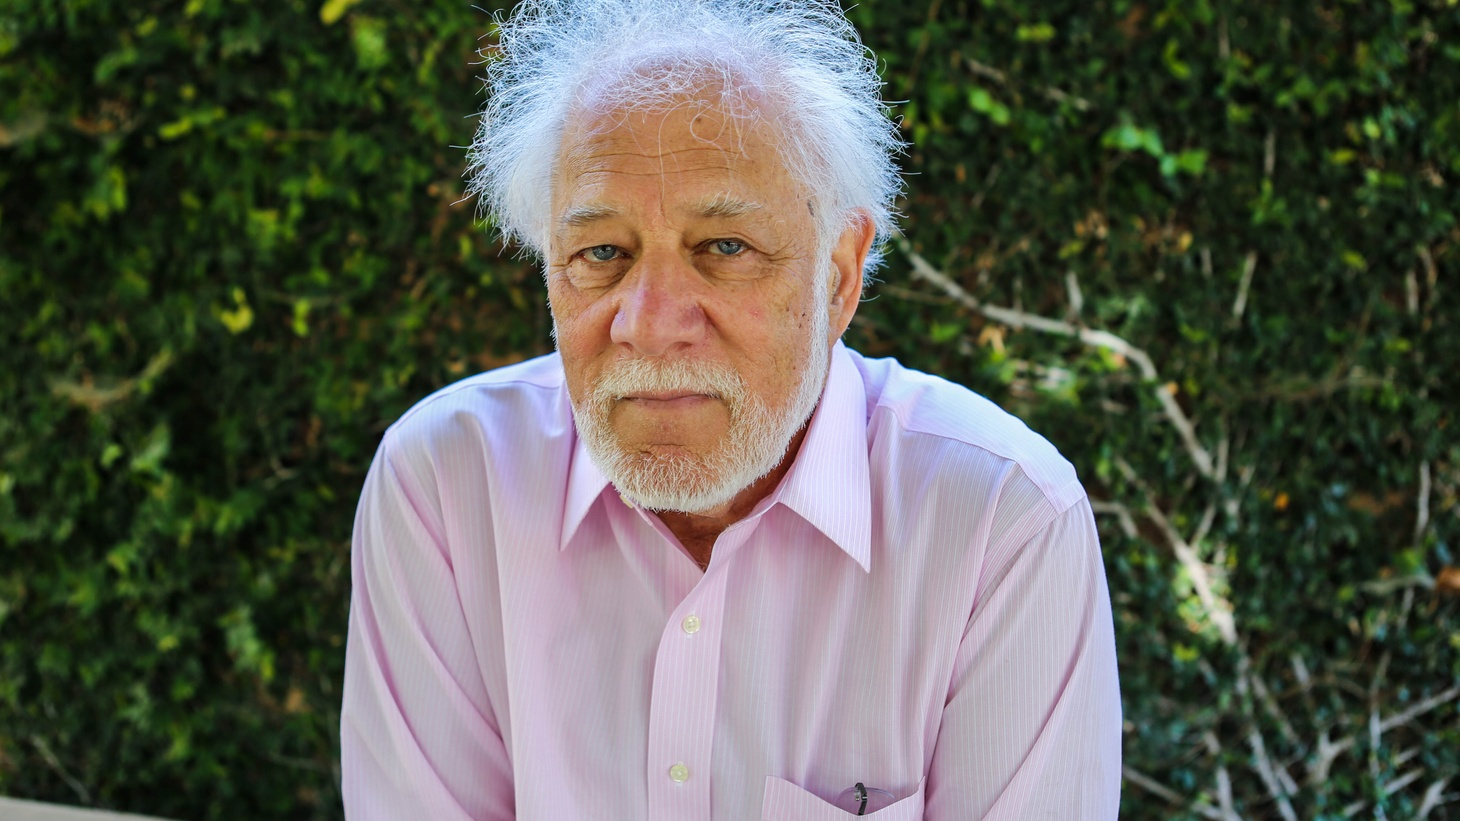 Michael Ondaatje's Warlight alters the rules about how big a novel's canvas can be; it gives the feeling of completeness without telling all the secrets.